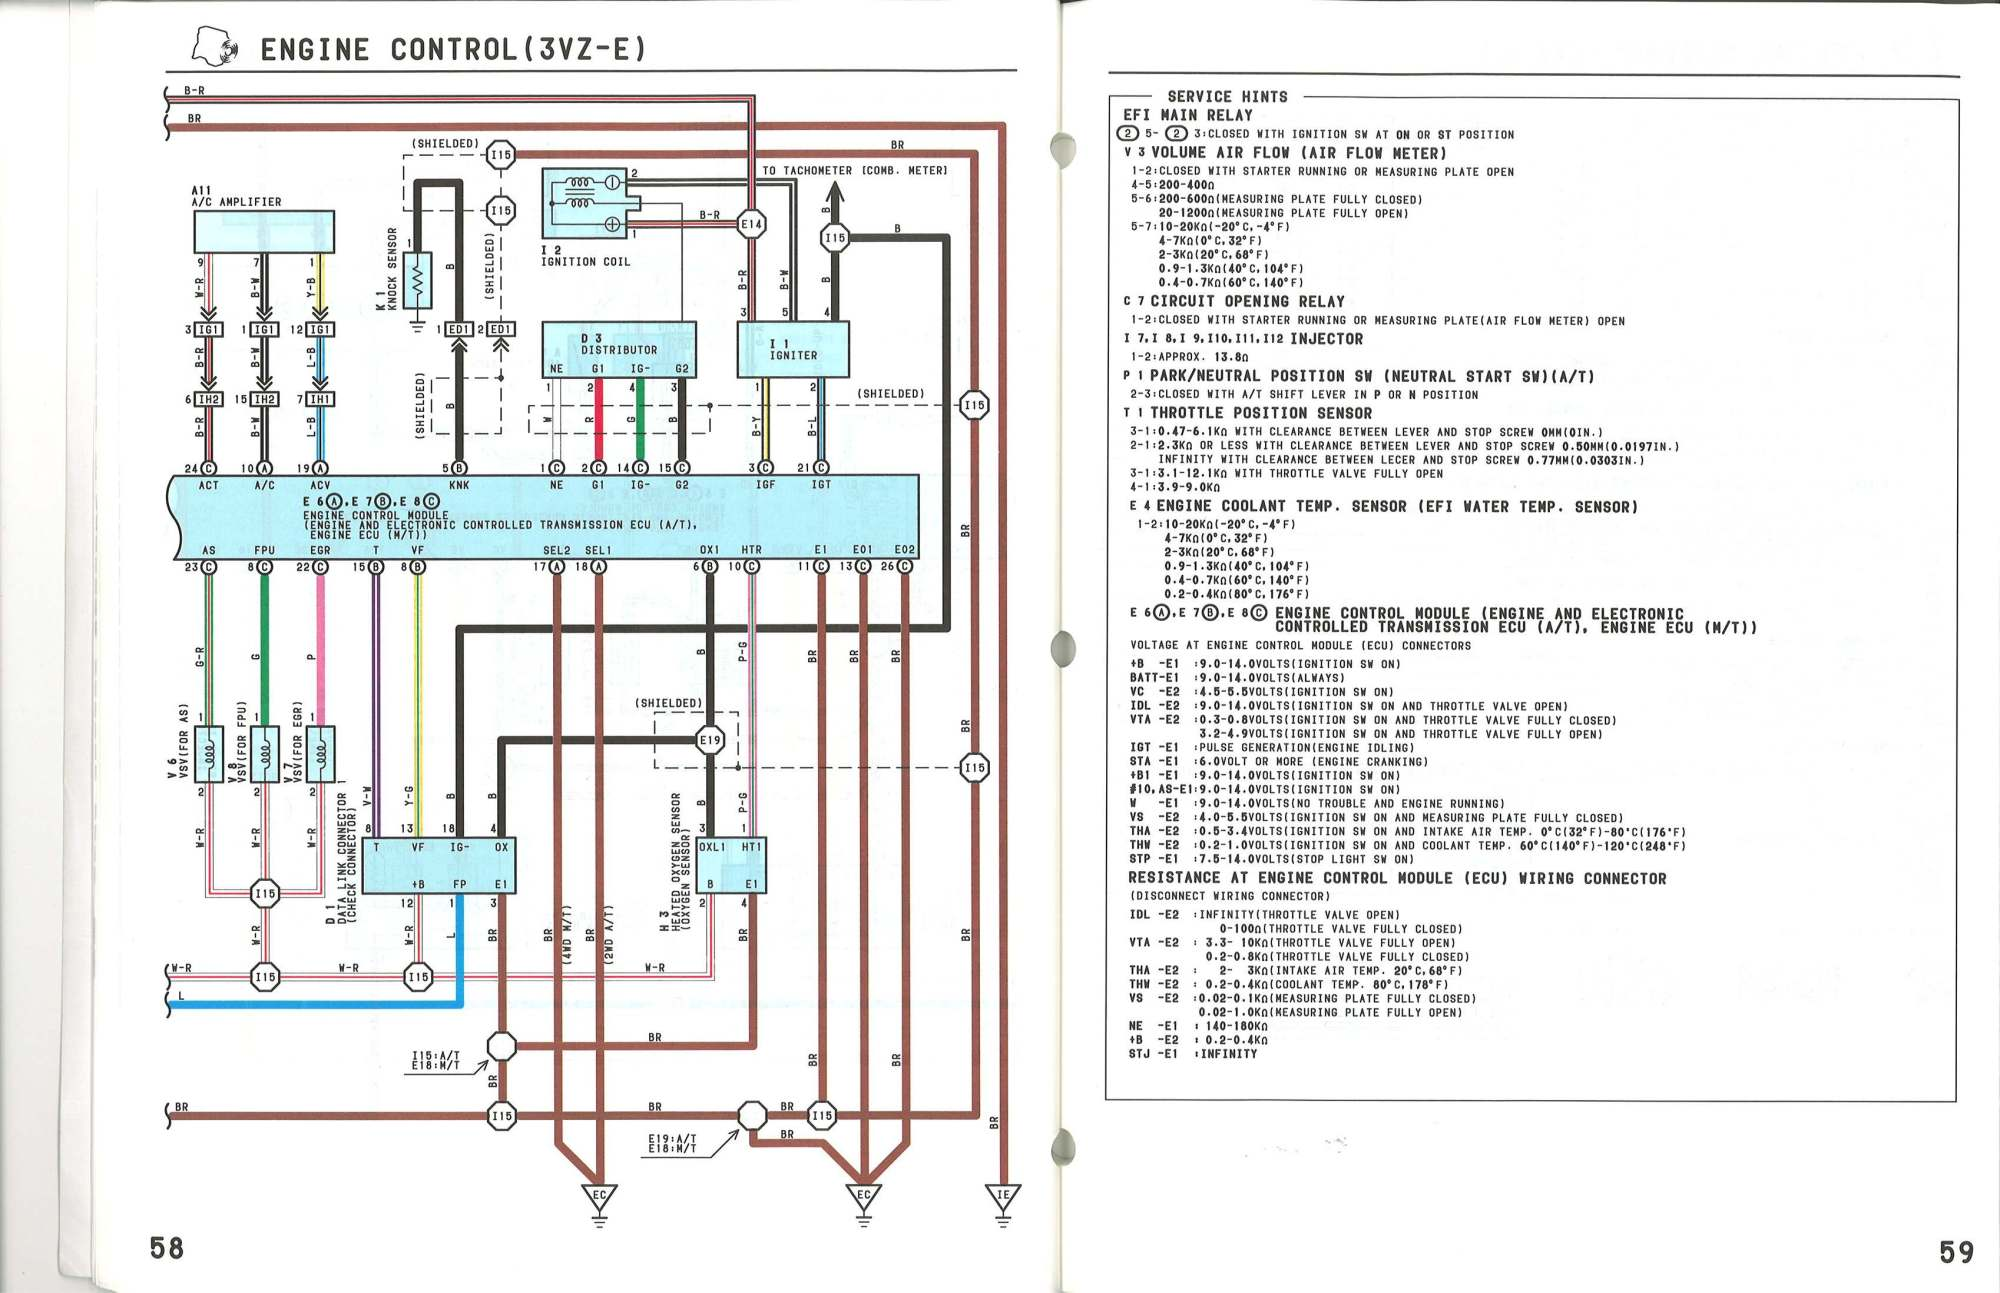 hight resolution of toyota 3vze engine diagram 1995 4runner simple wiring schema toyota 3 0 v6 engine diagram 1990 toyota